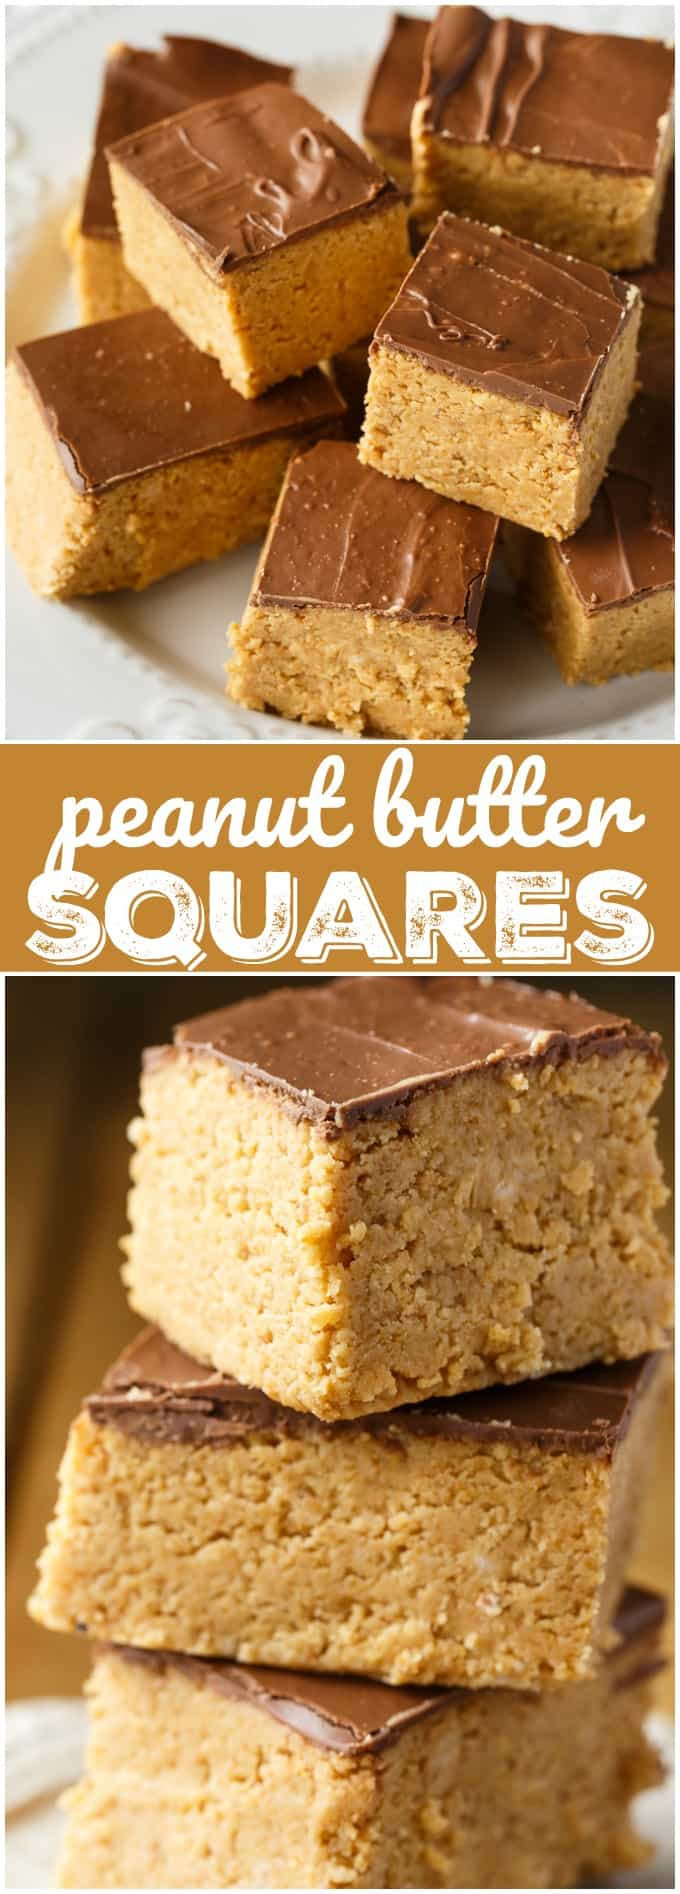 Peanut Butter Squares - A simple, no-bake dessert with an extra thick layer of sweet peanut butter followed by rich milk chocolate.